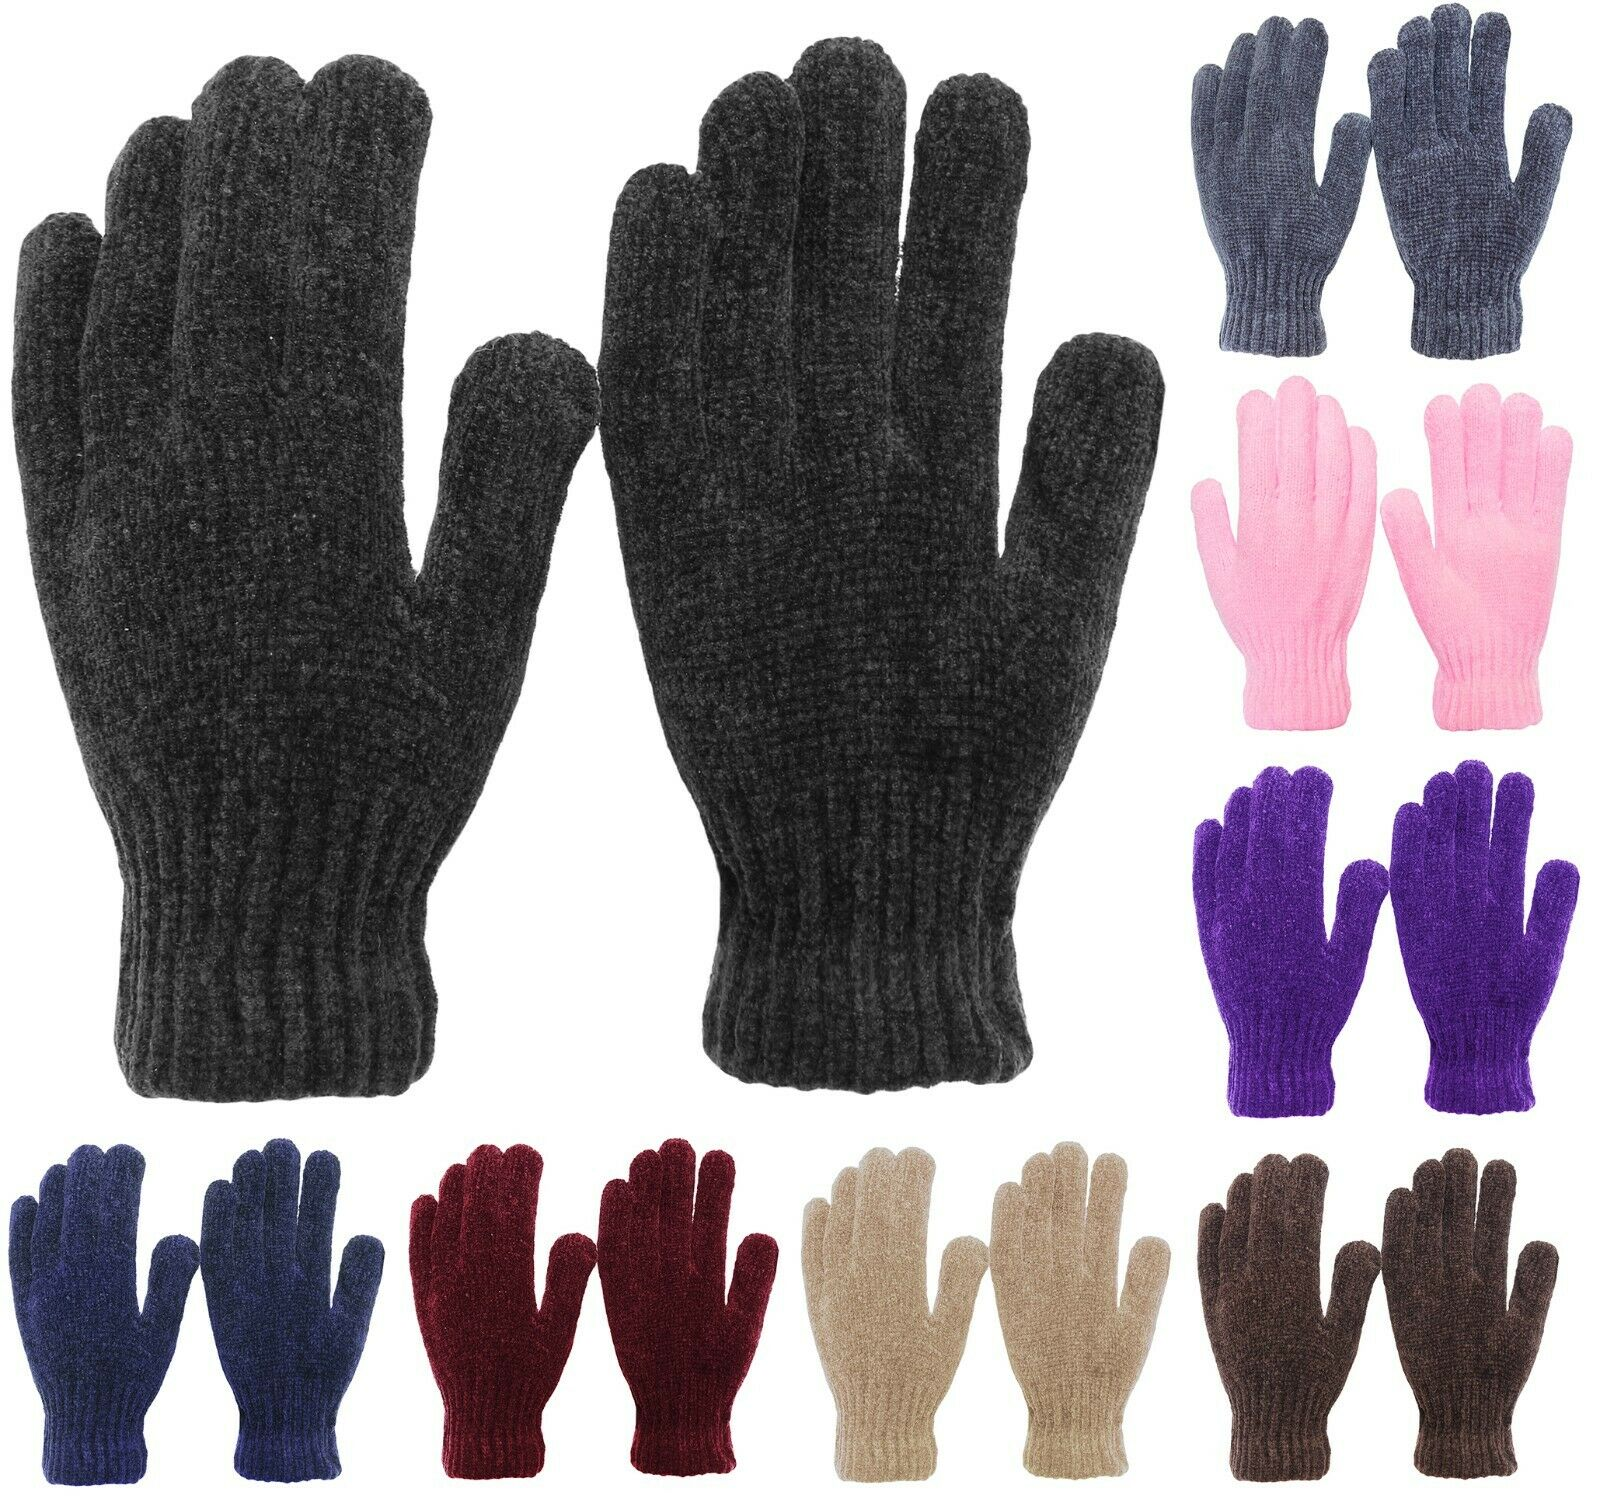 Soft and Stretchy Womens Chenille Winter Magic Gloves Clothing, Shoes & Accessories